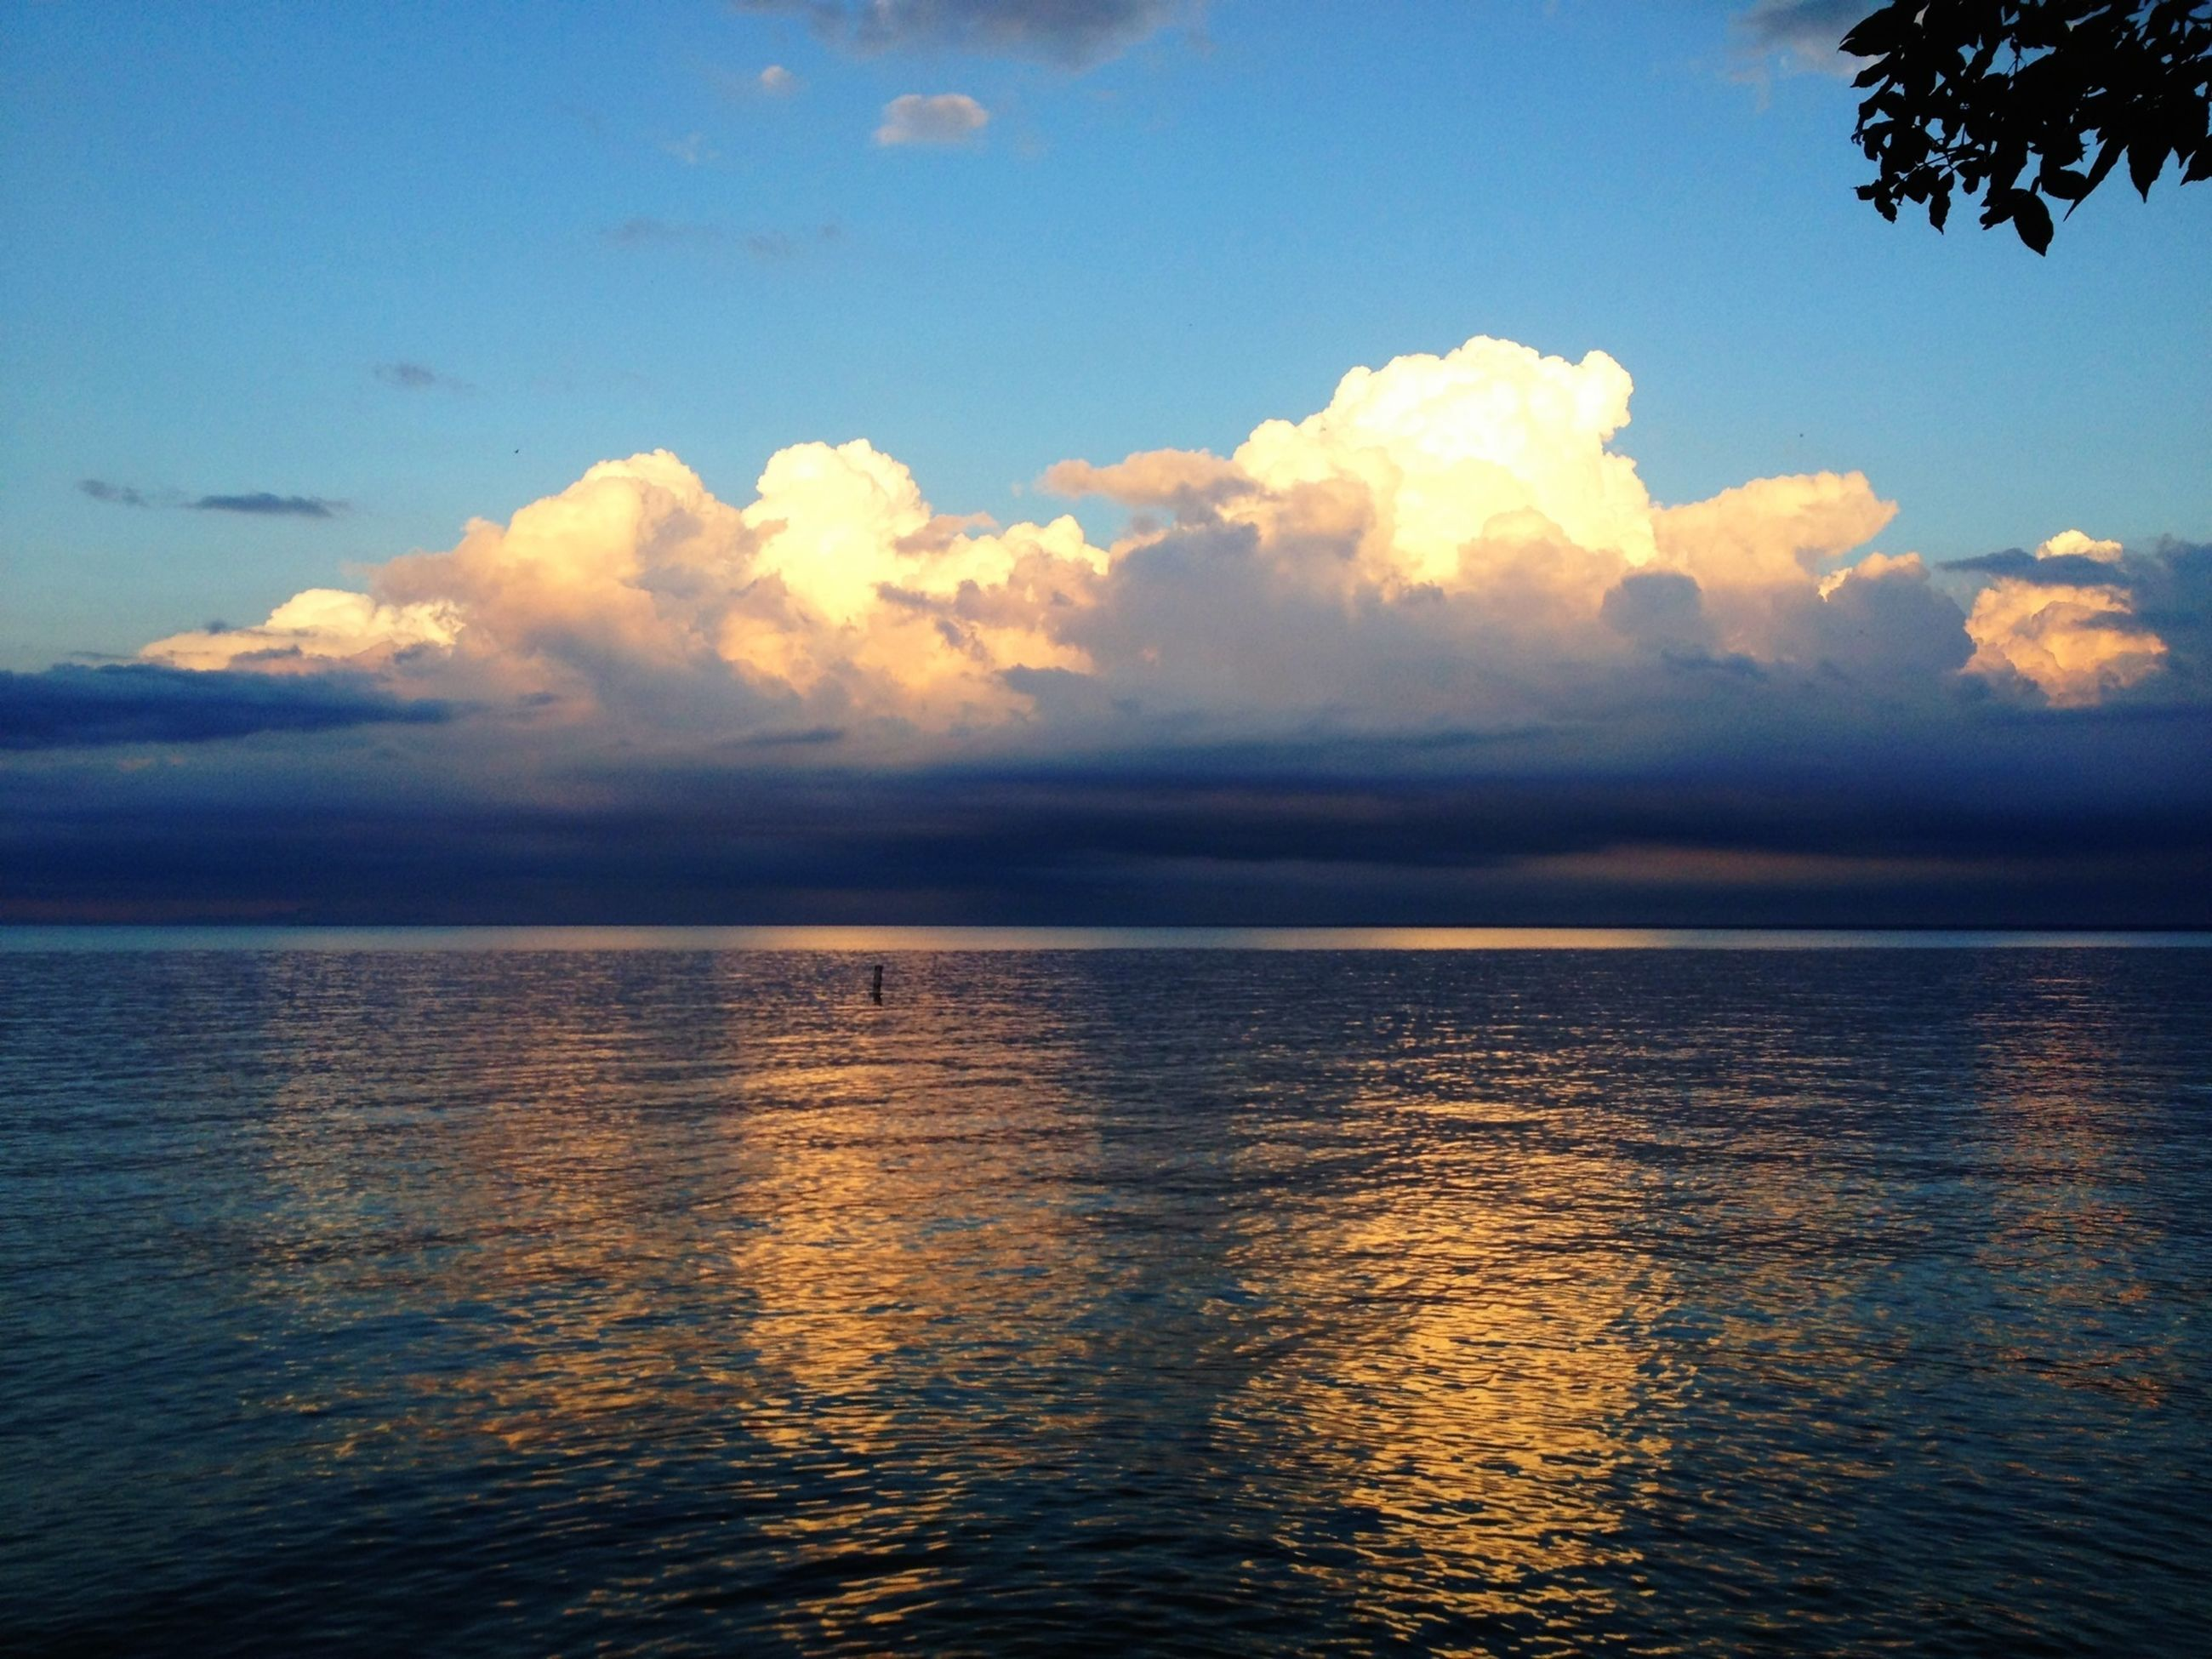 water, tranquil scene, sky, tranquility, scenics, sea, beauty in nature, waterfront, horizon over water, cloud - sky, nature, cloud, rippled, idyllic, sunset, blue, reflection, calm, cloudy, outdoors